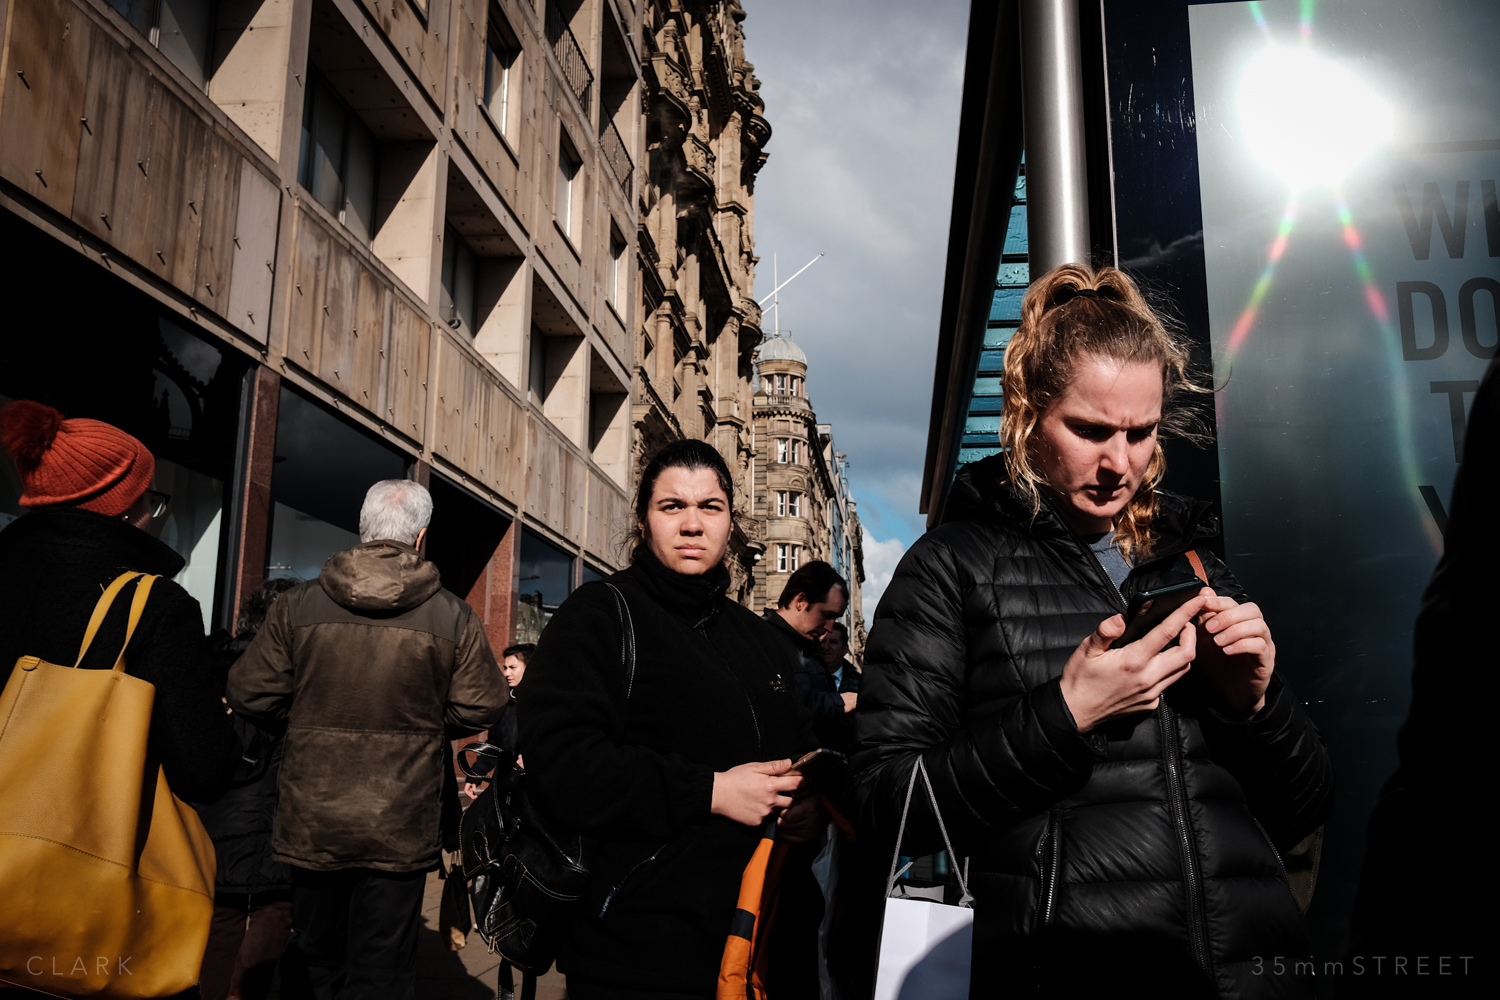 025_35mmStreet-Edinburgh-Street-Photography-20190404.jpg